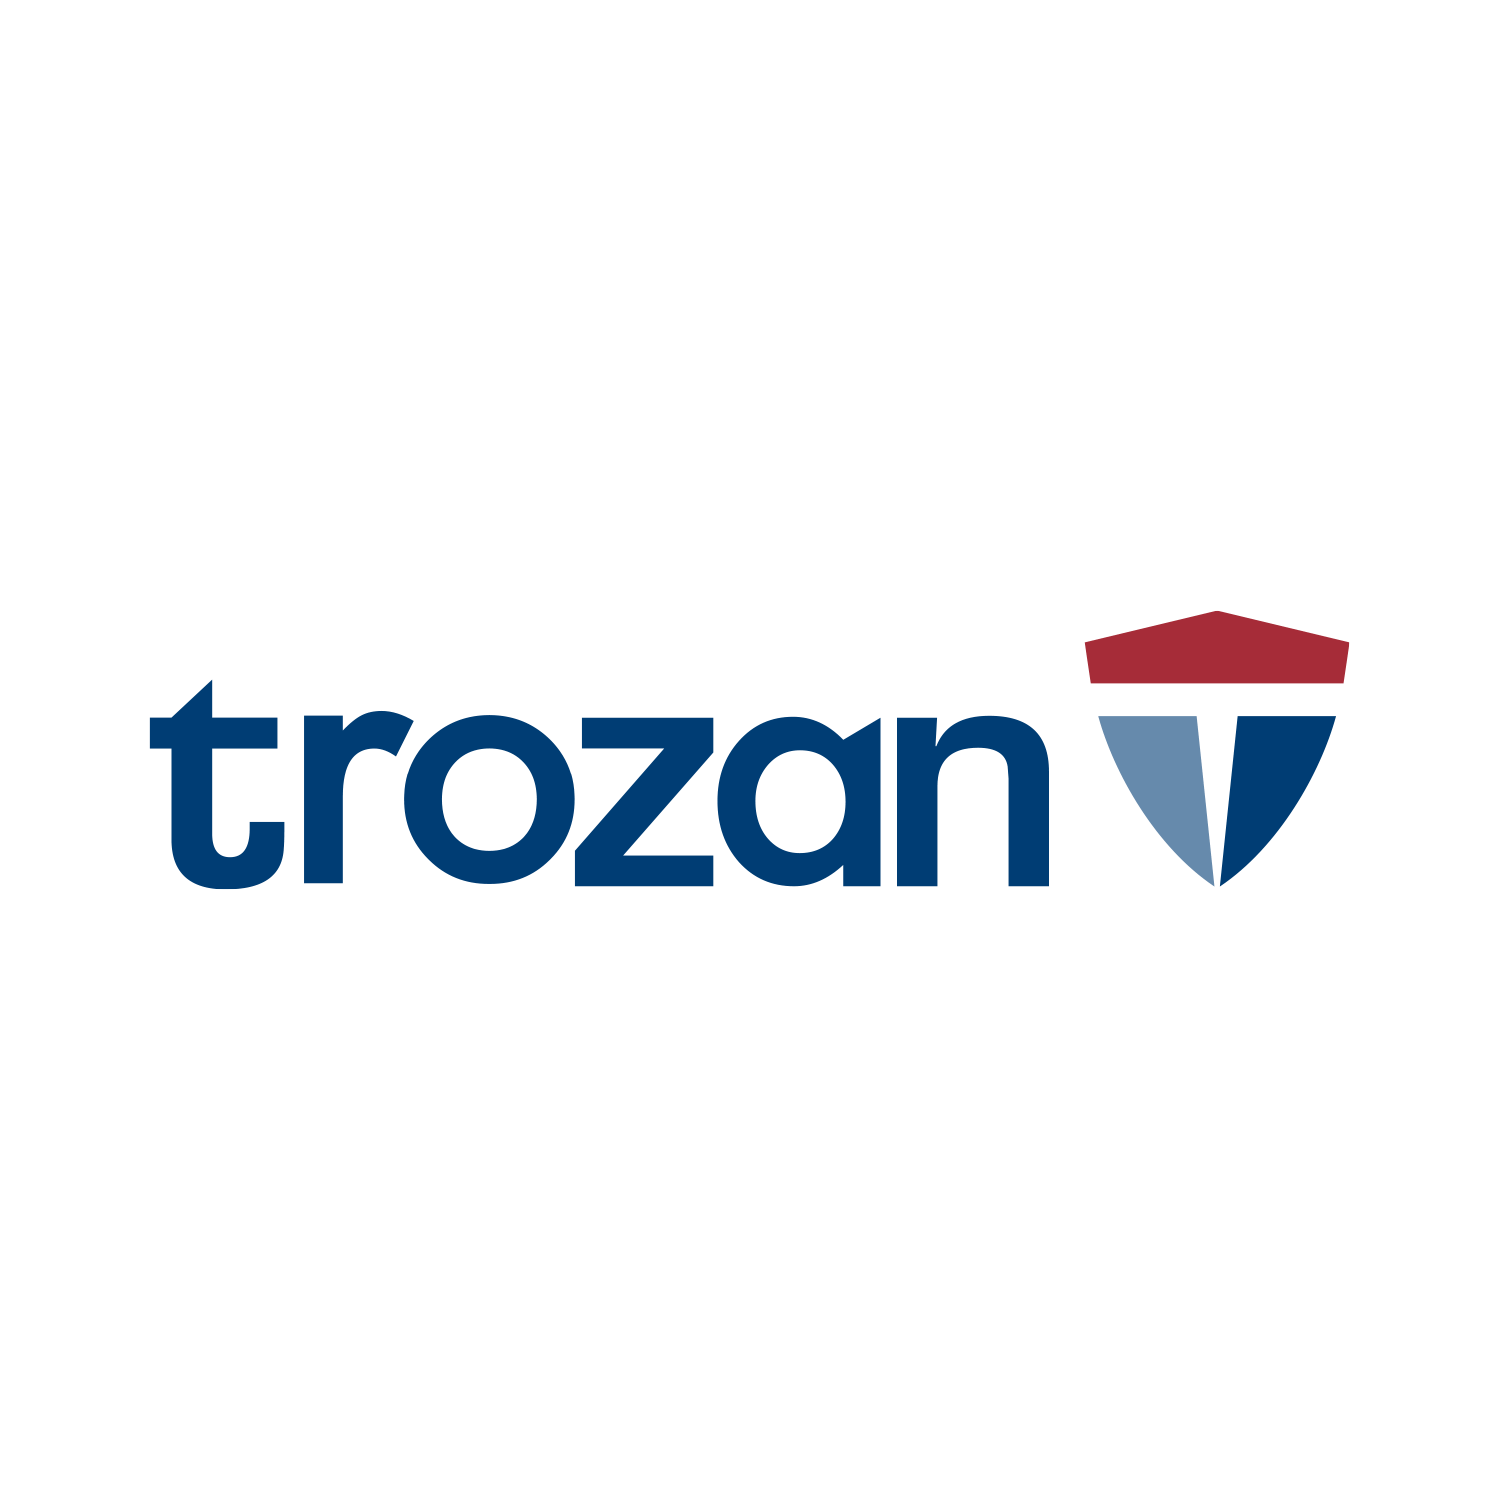 Trozan Insurance Logo Design - Fort Collins, CO Insurance Services Company